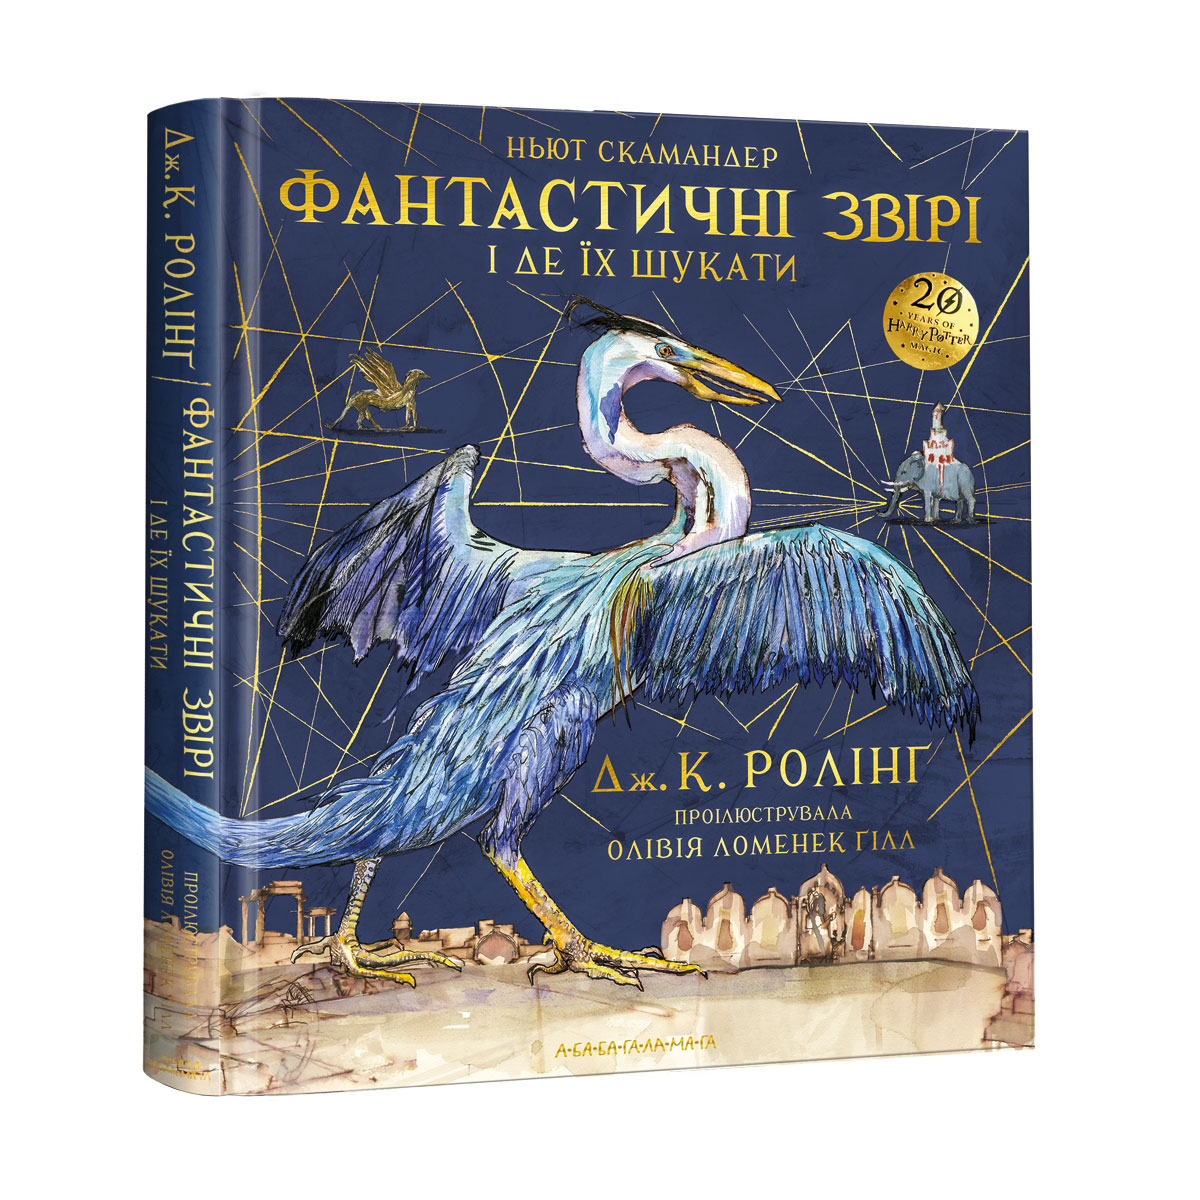 Fantastic Beasts Illustrated book cover